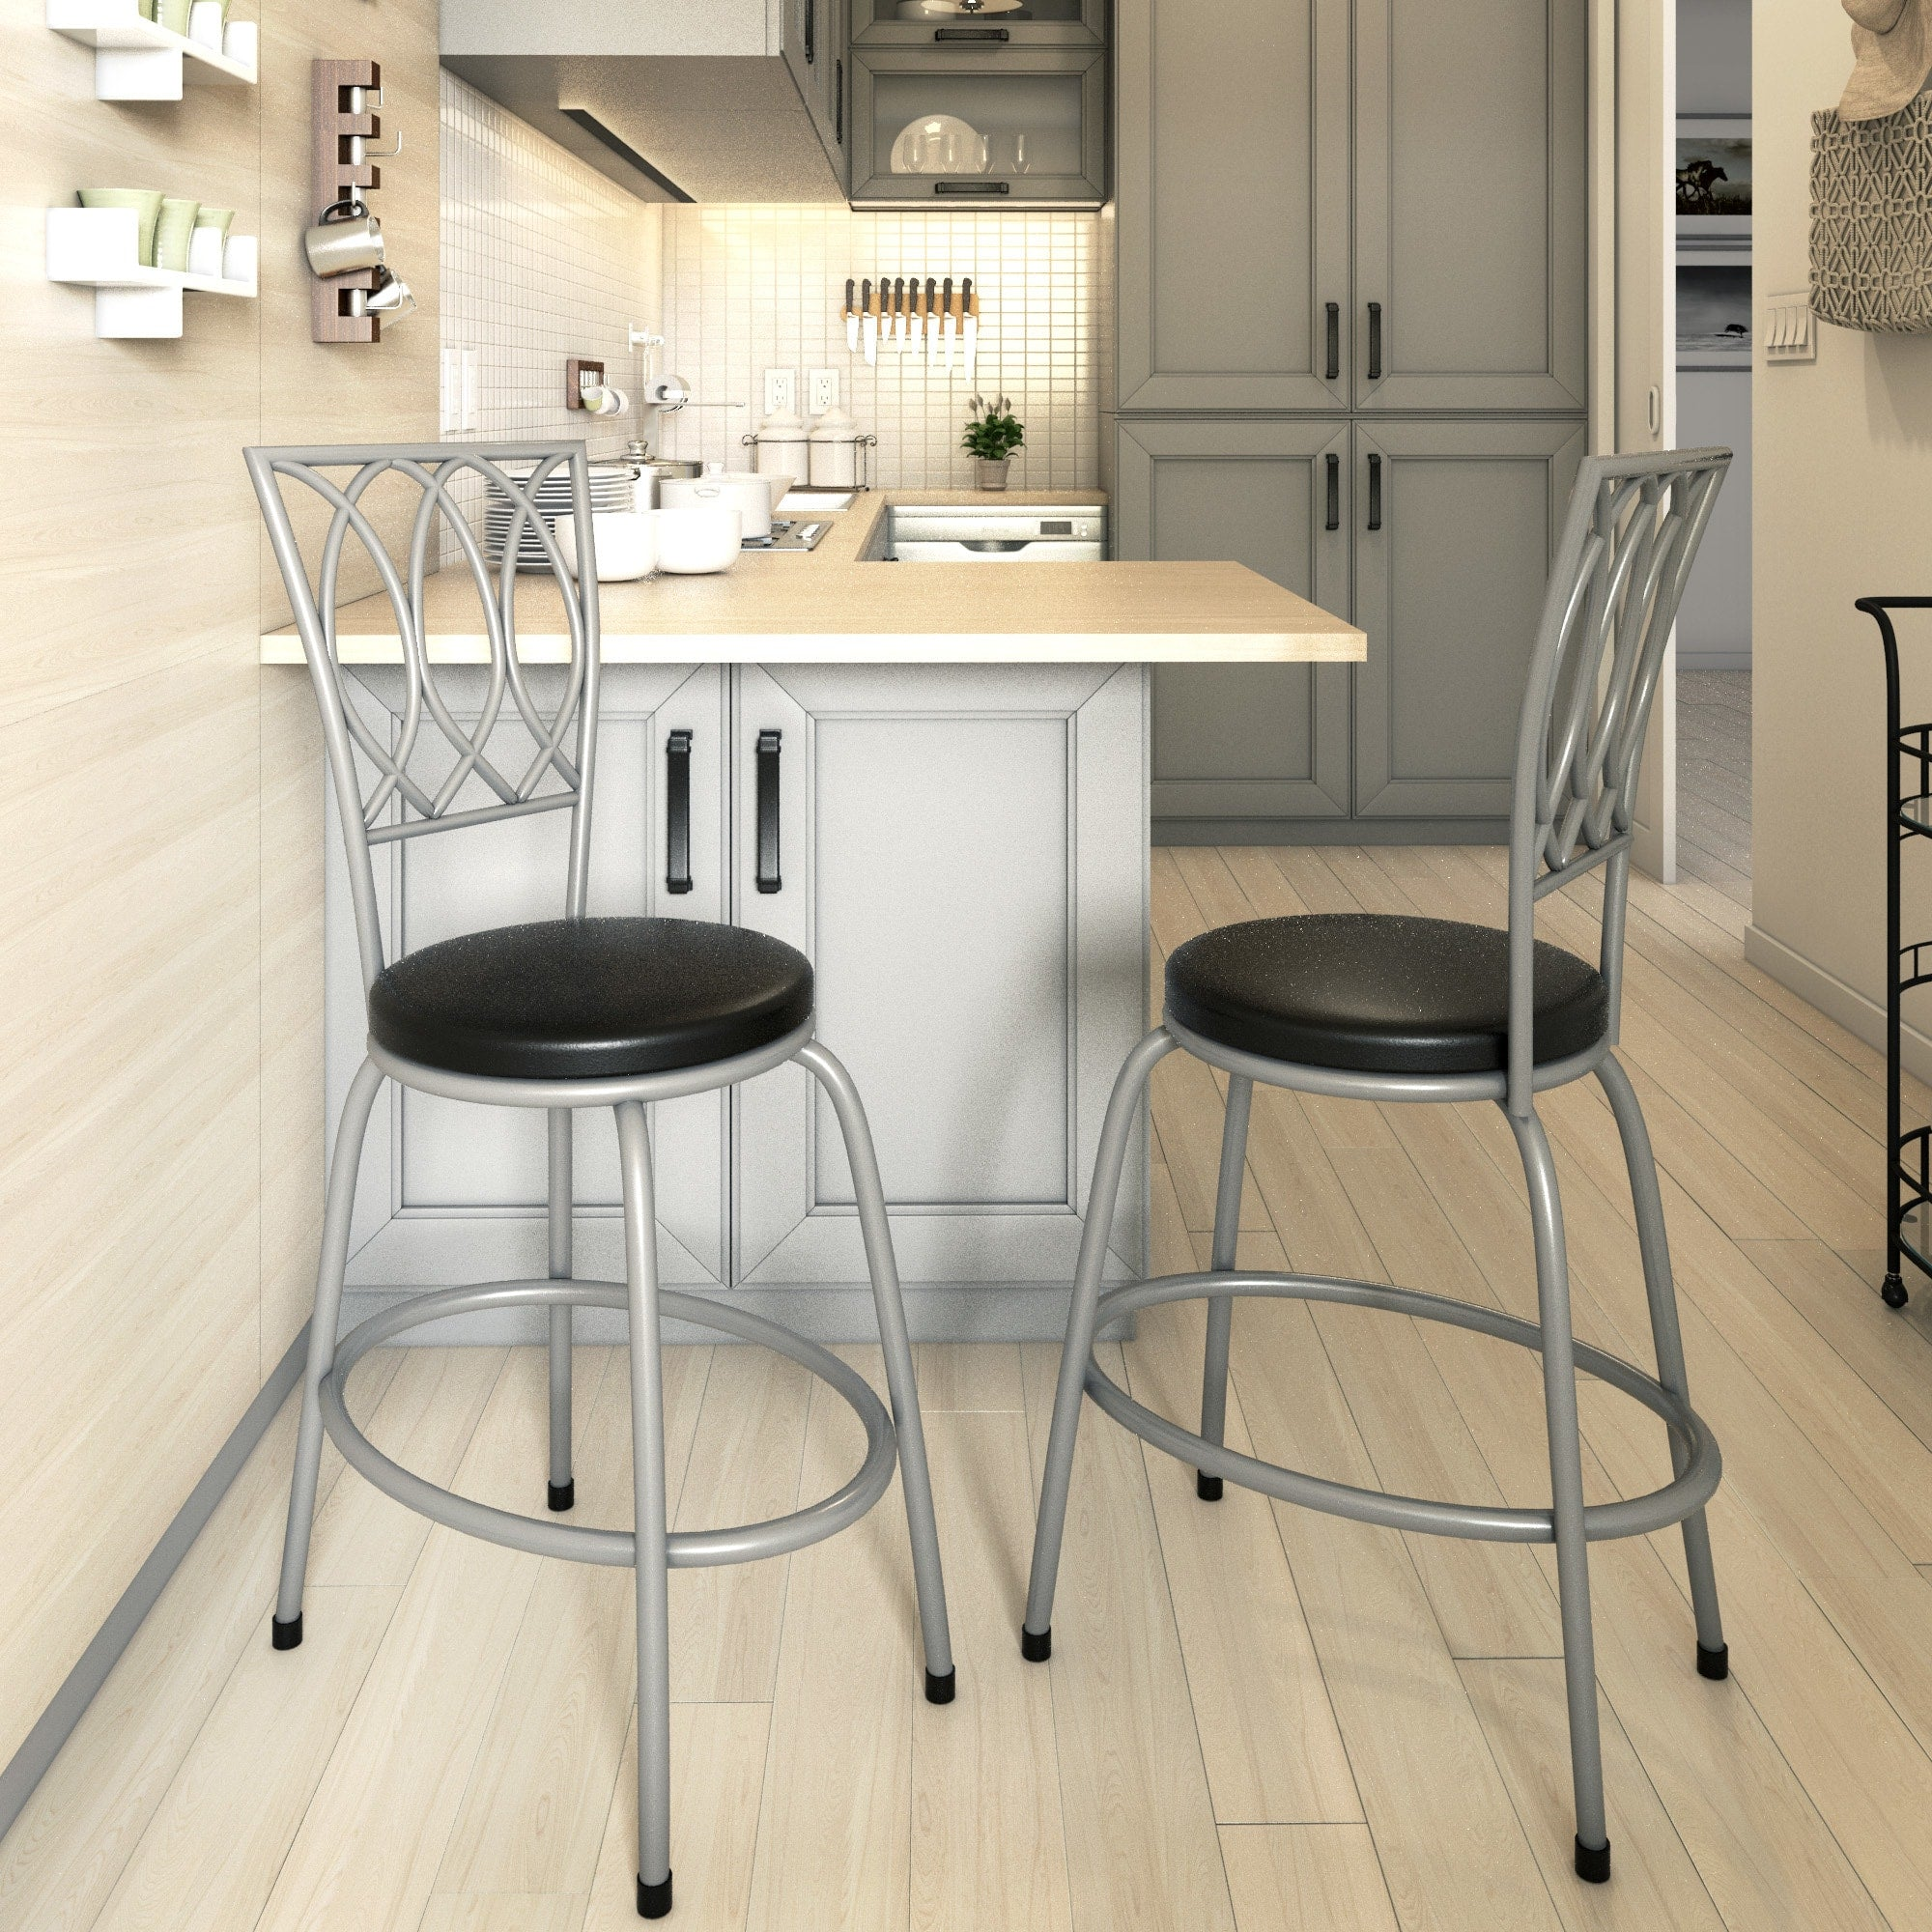 Counter Height Adjustable Metal Powder-coated Bar Stool